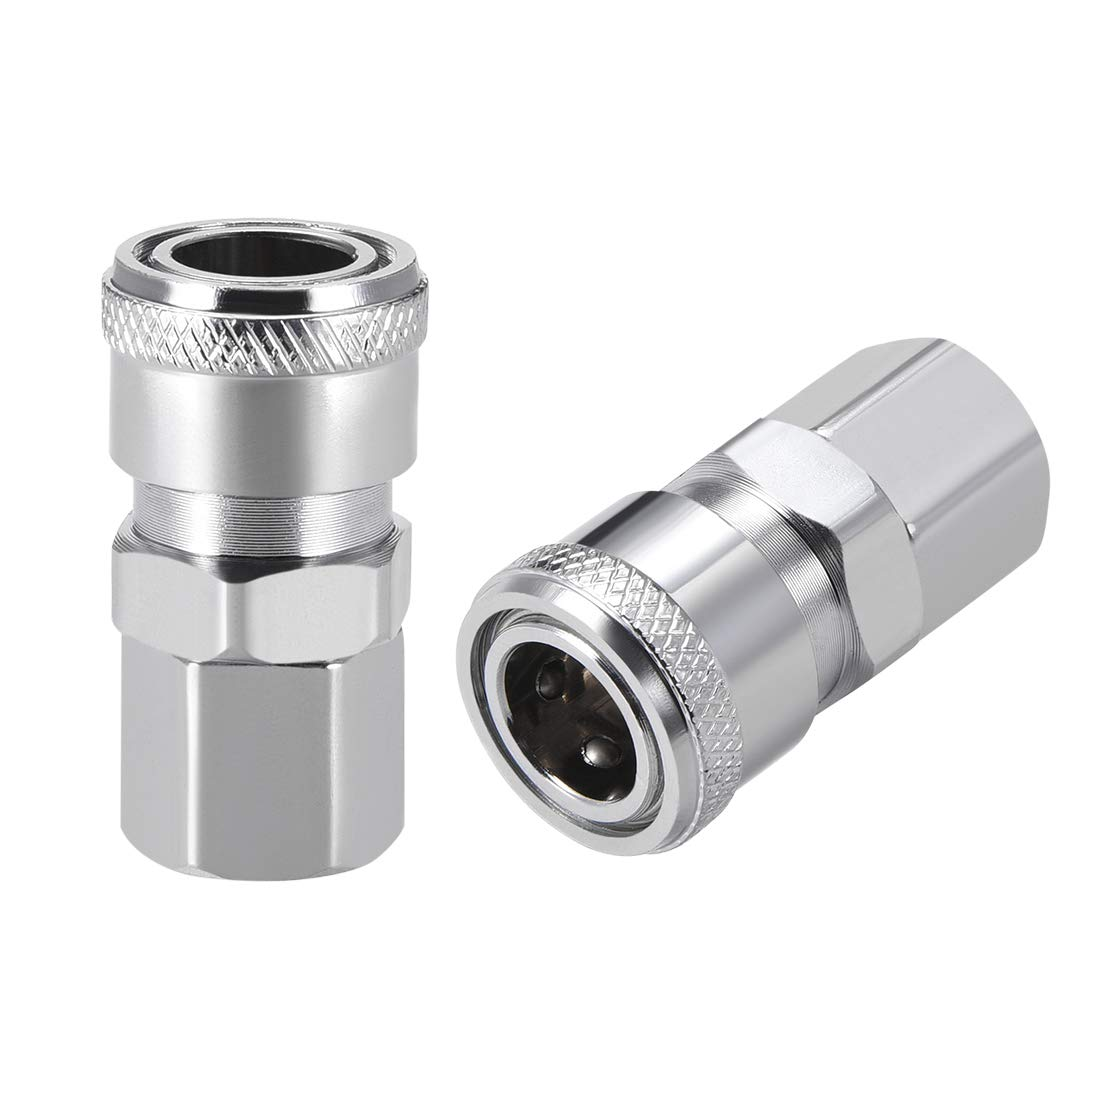 uxcell Air Tool Pressure Washer Female High Flow Coupler Plug G 1//2 Quick Connect Fitting Set